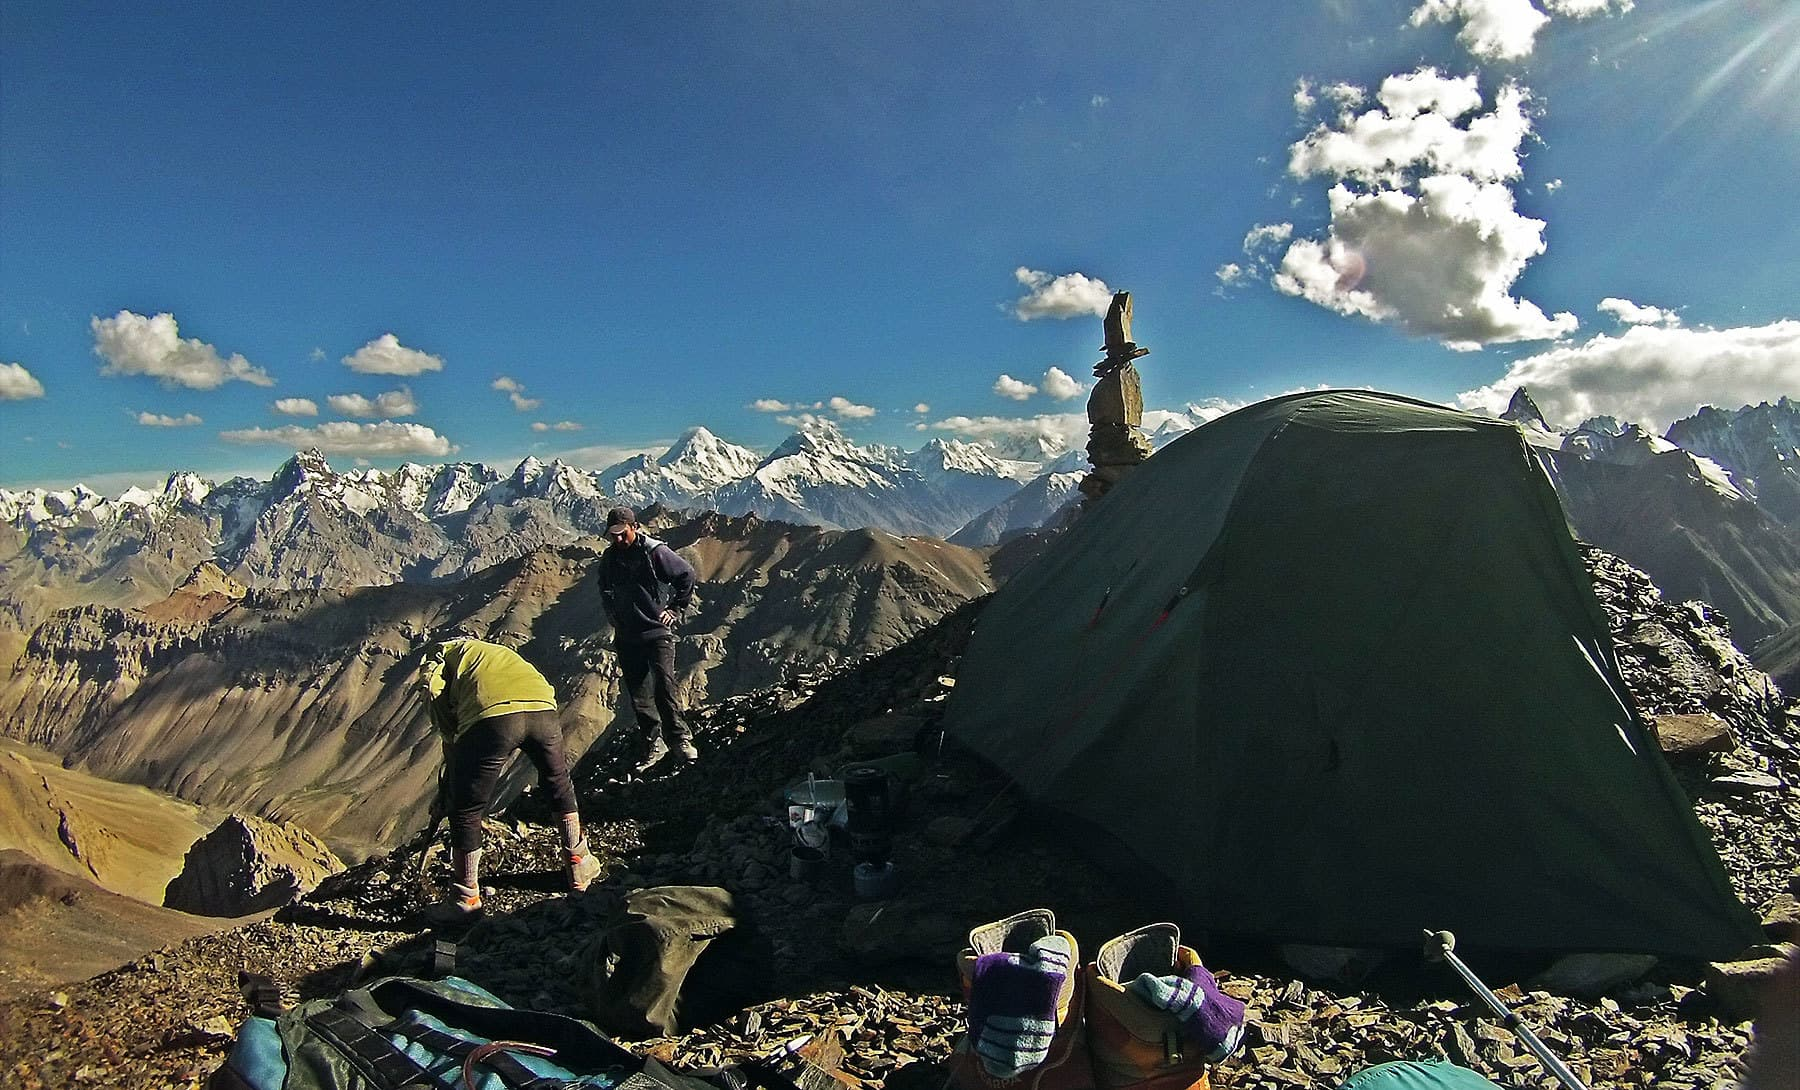 The view from the high camp was simply out of this world.